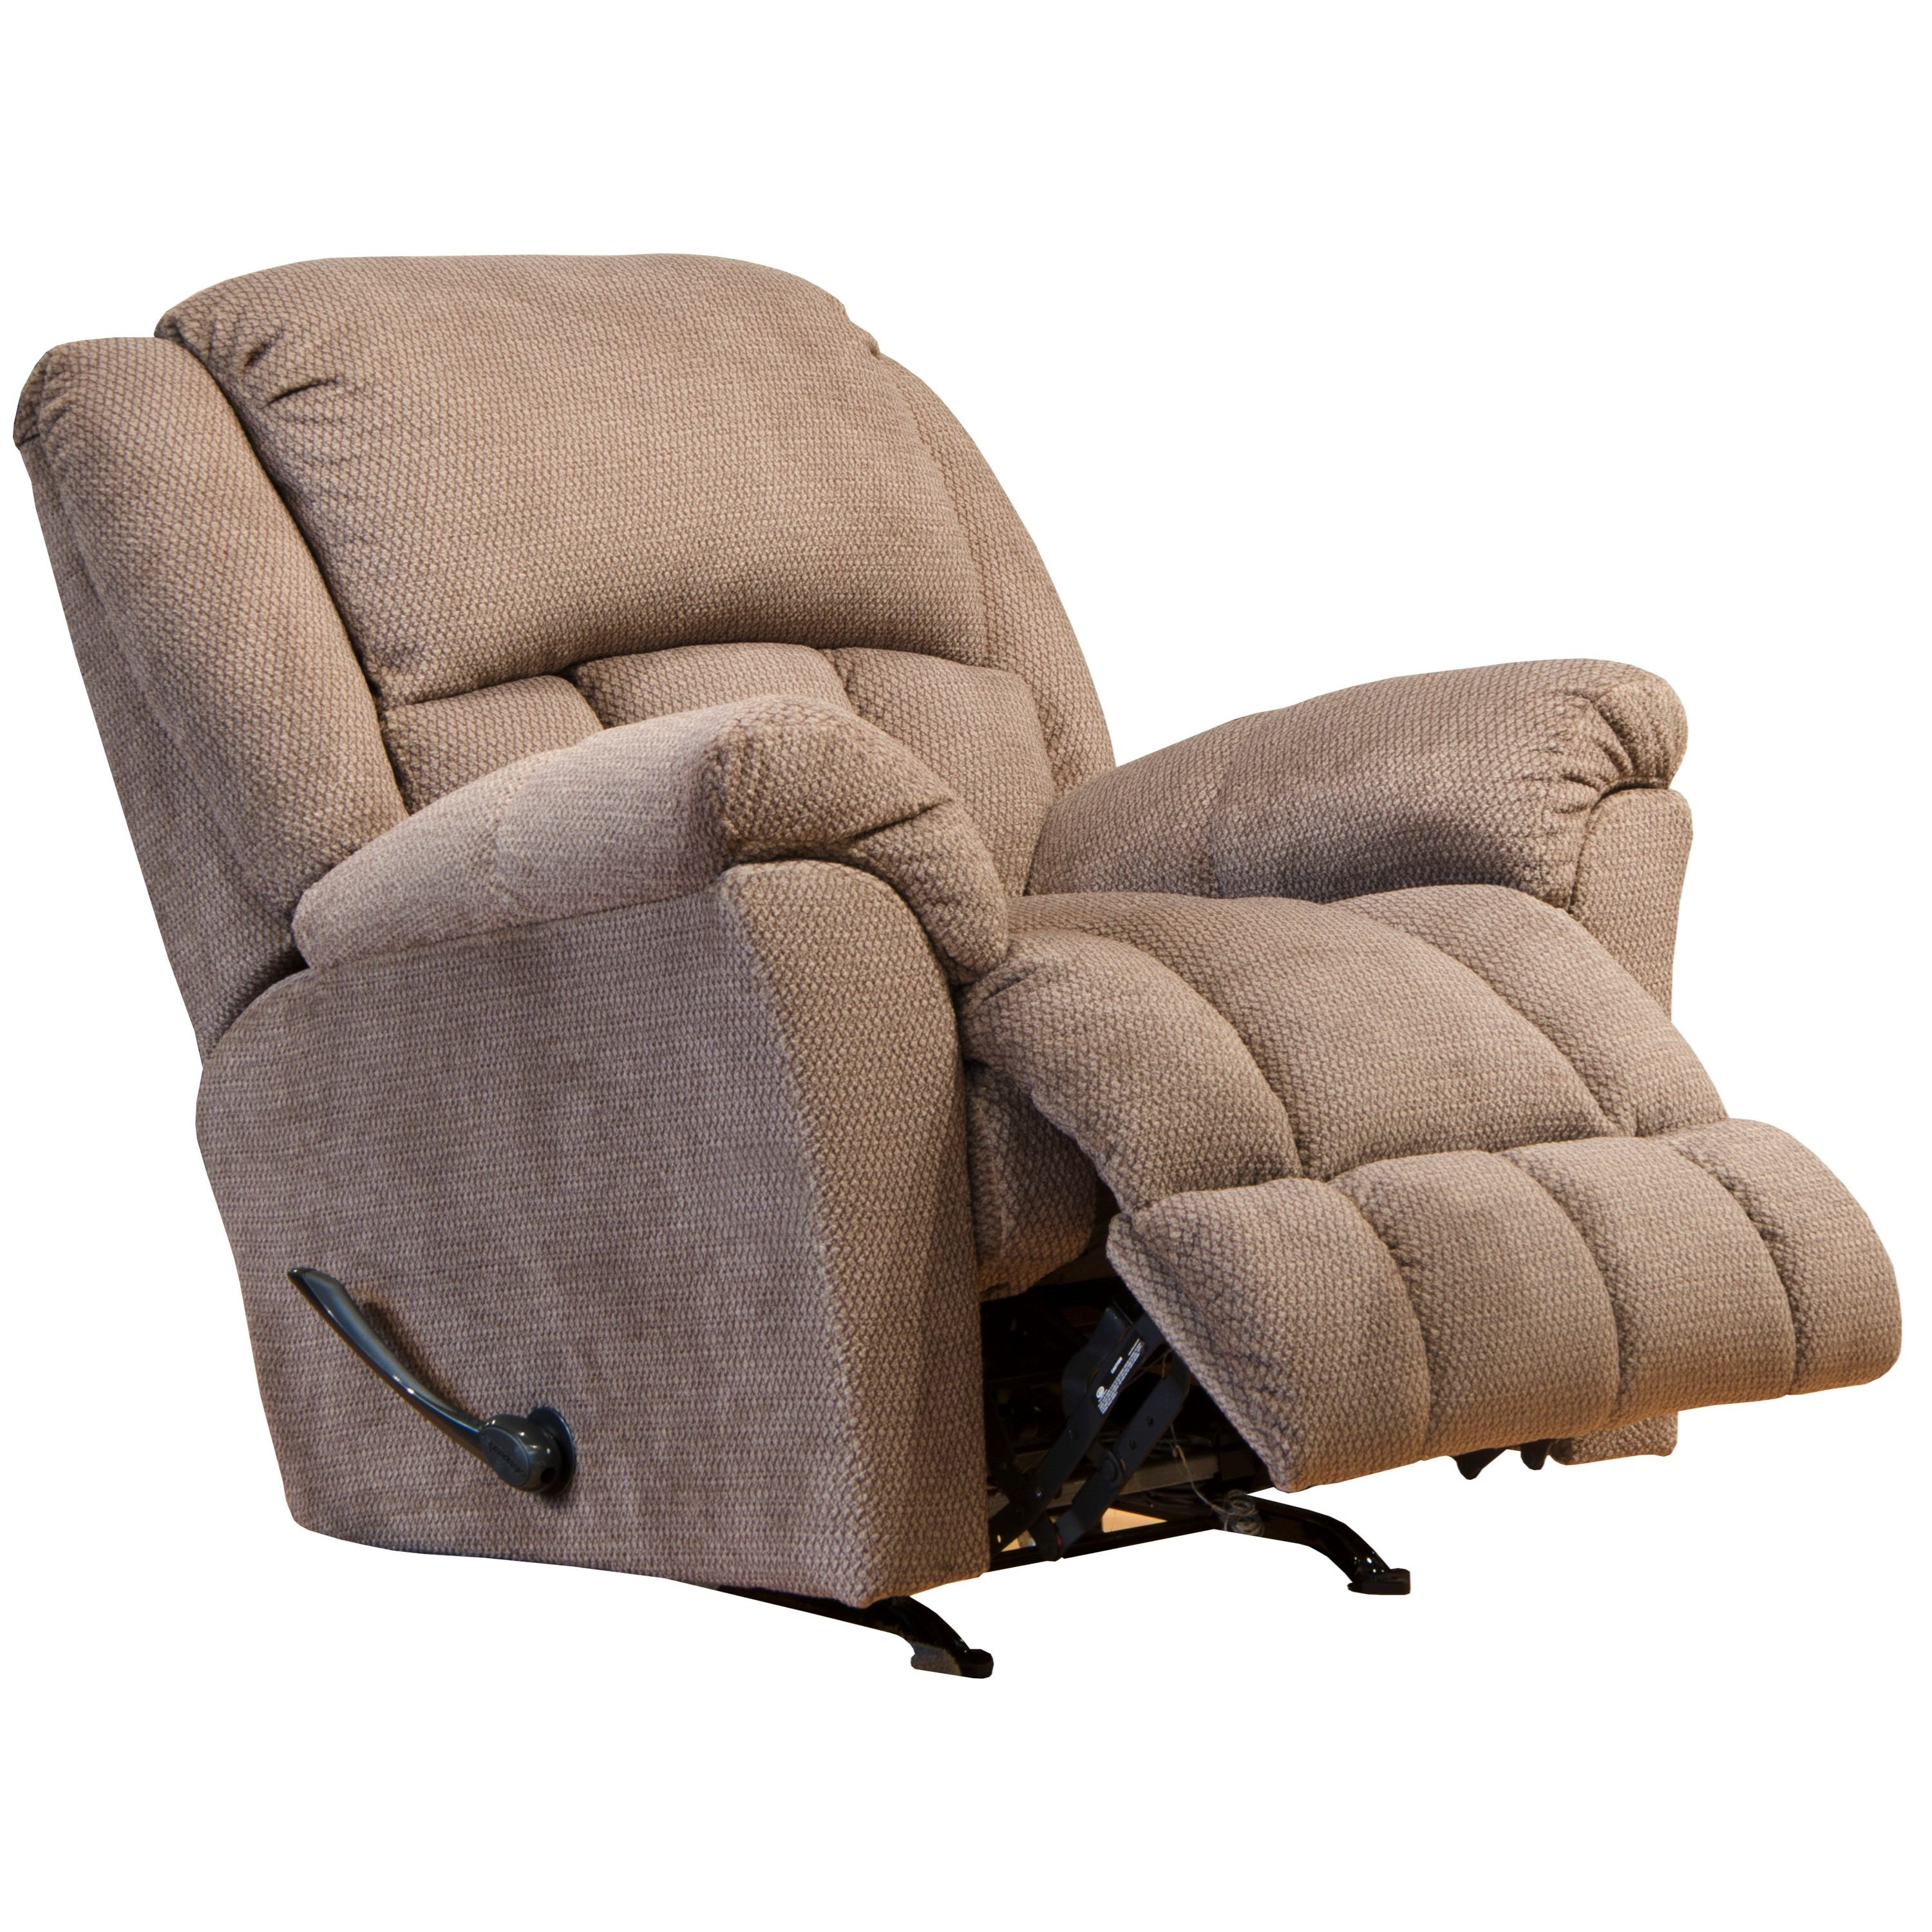 Catnapper Chair Catnapper Motion Chairs And Recliners Bingham Rocker